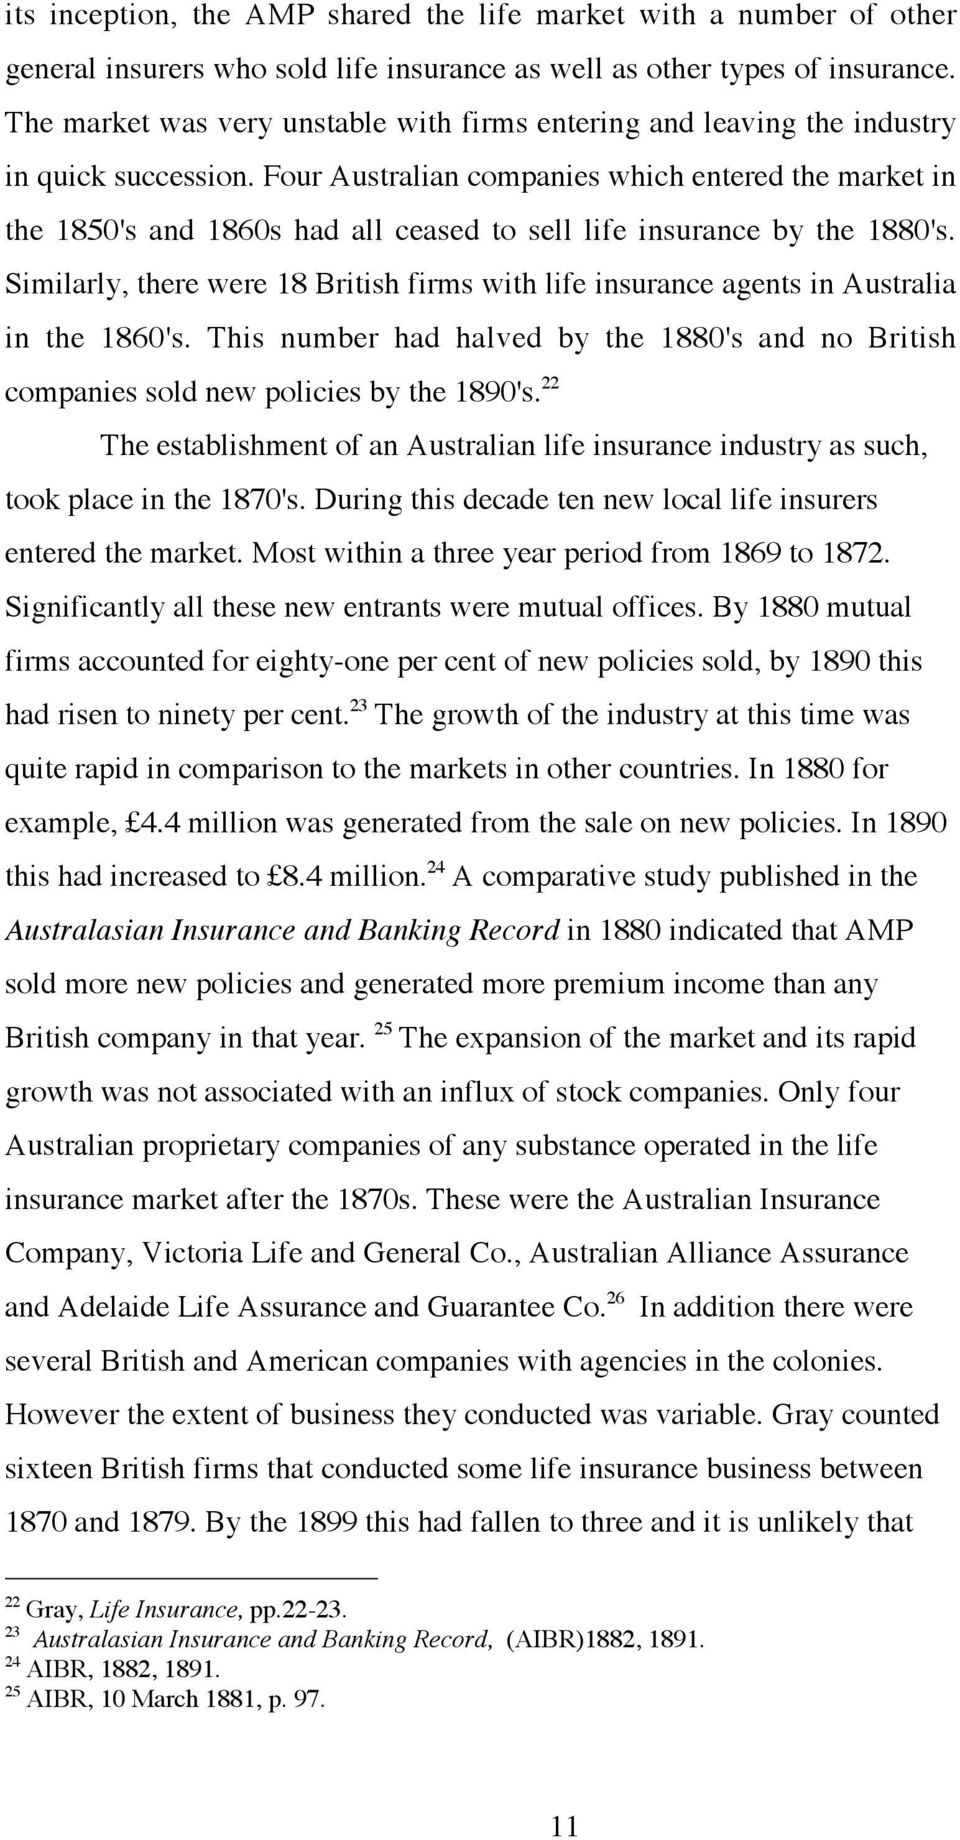 Four Australian companies which entered the market in the 1850's and 1860s had all ceased to sell life insurance by the 1880's.